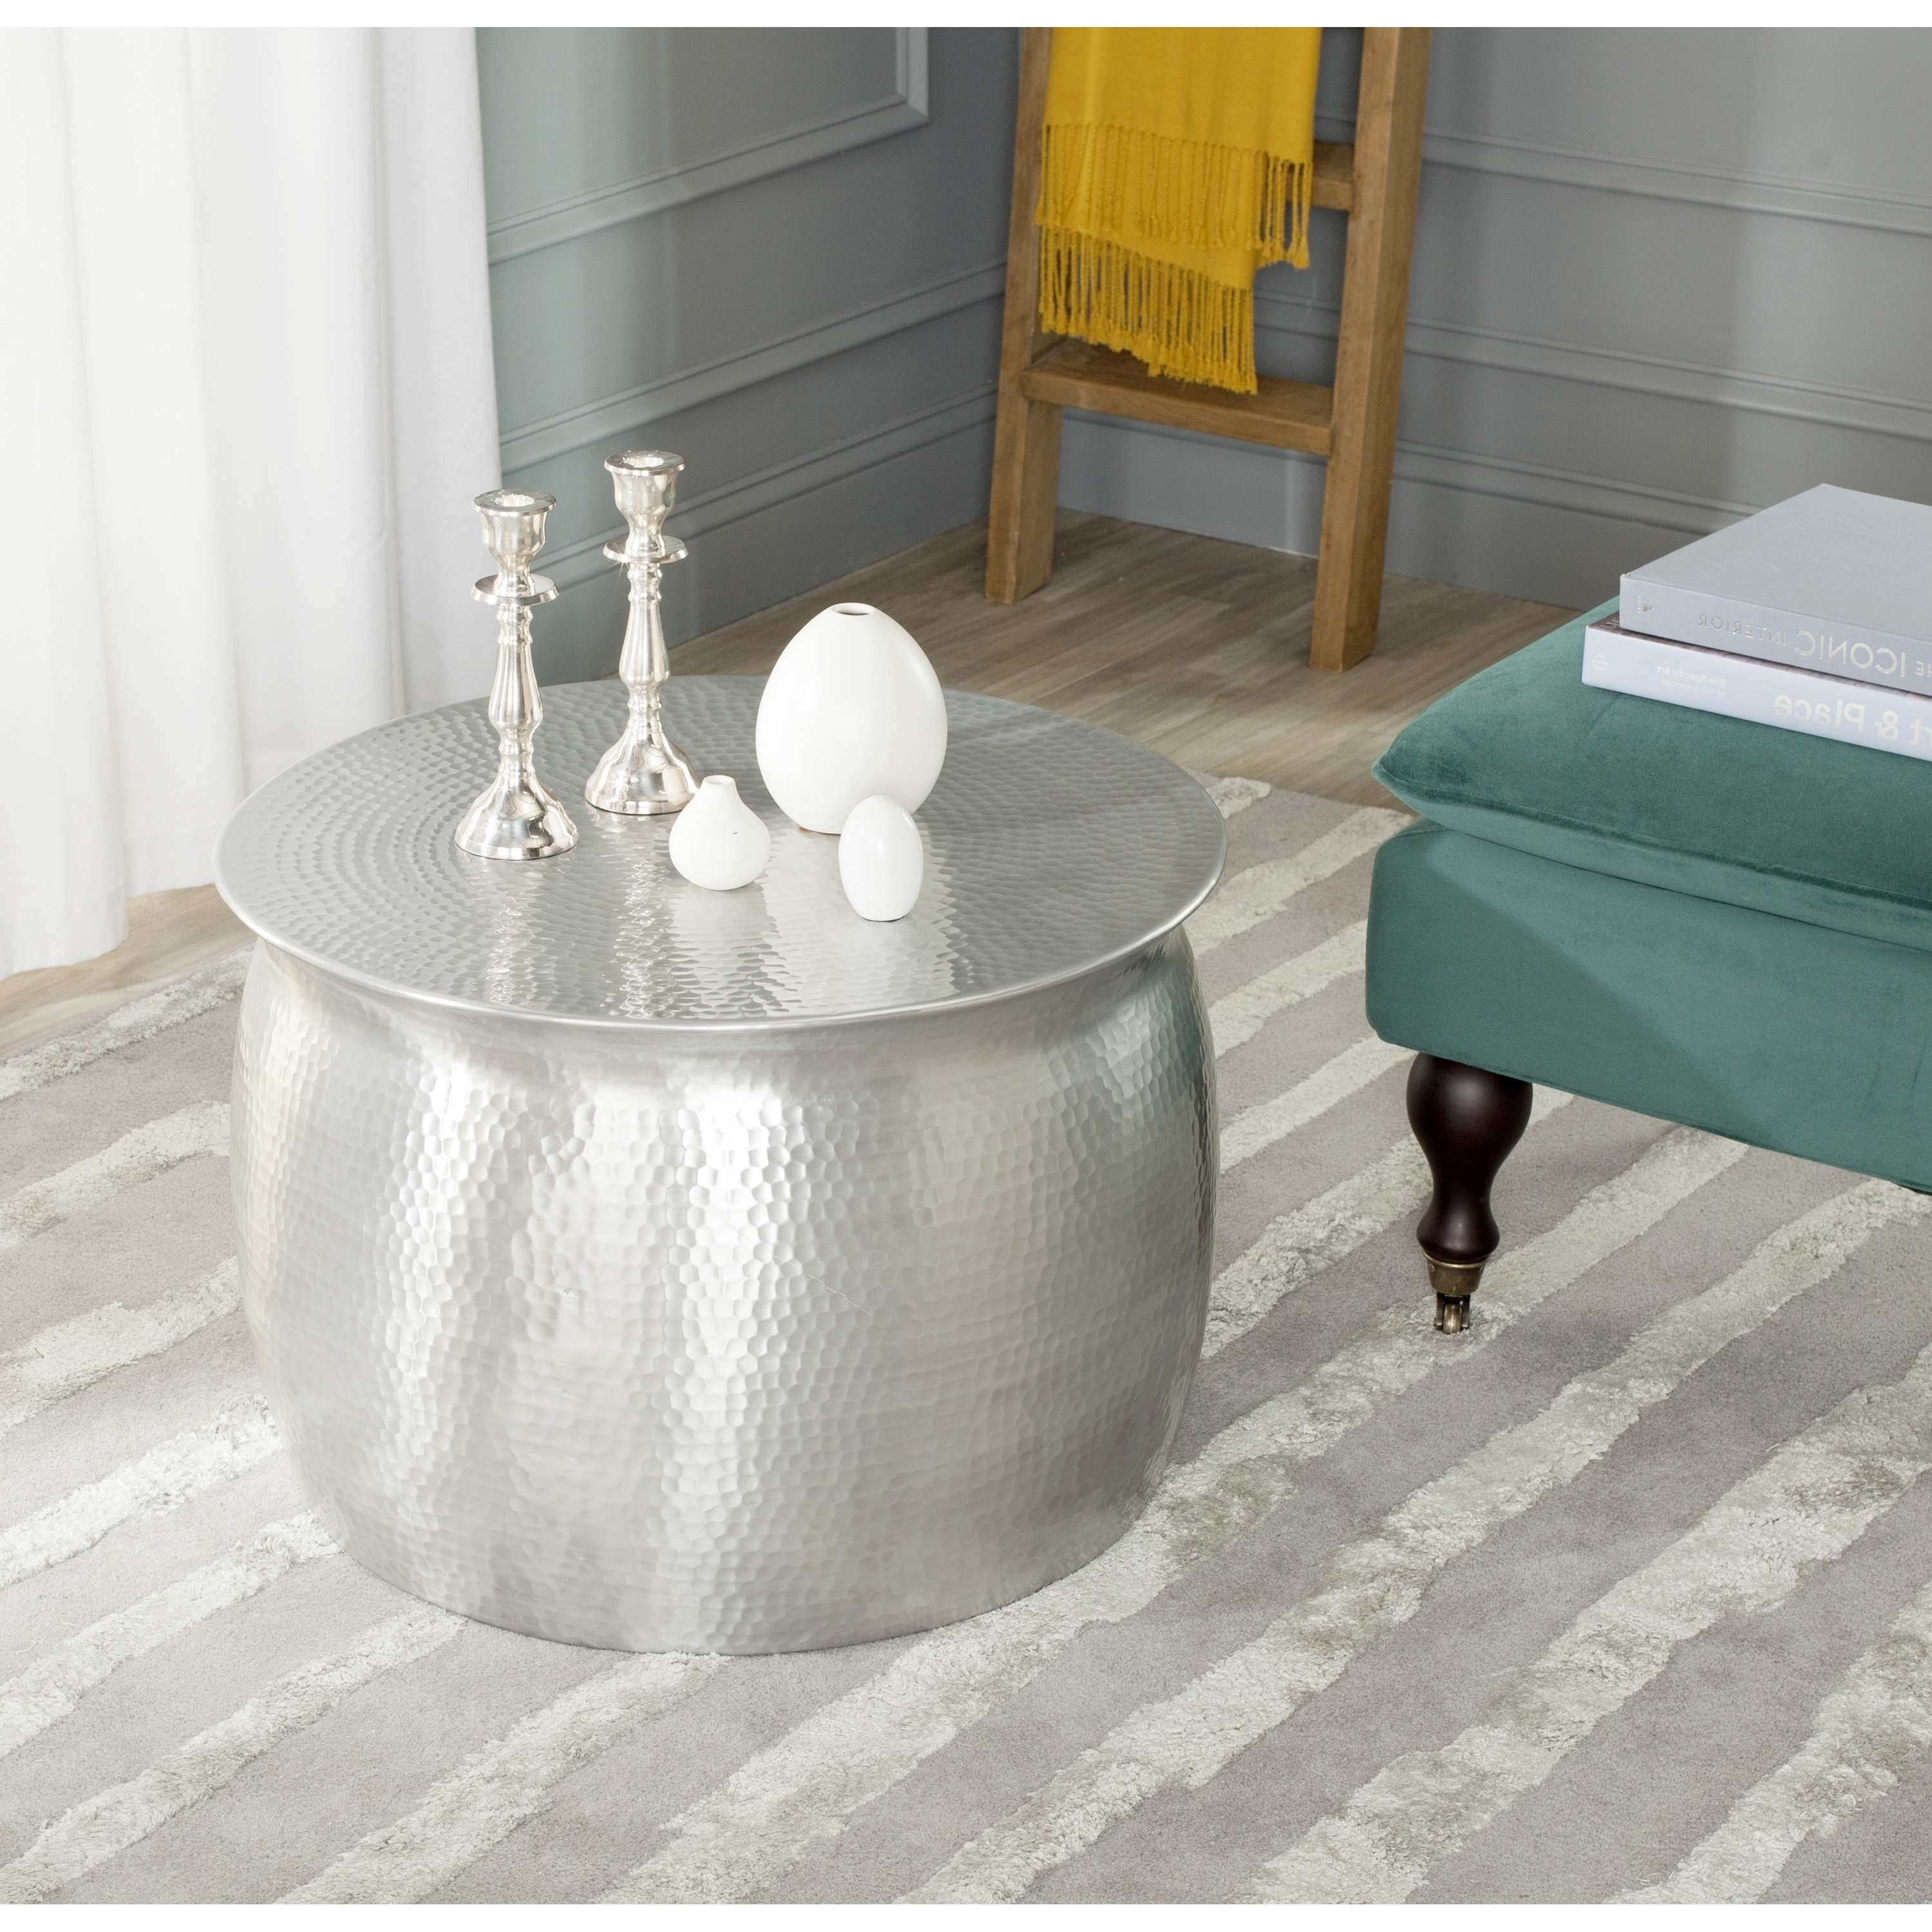 Organizing Small Living Room Spaces With Hammered Round Silver Pertaining To Most Popular Hammered Silver Coffee Tables (View 13 of 20)